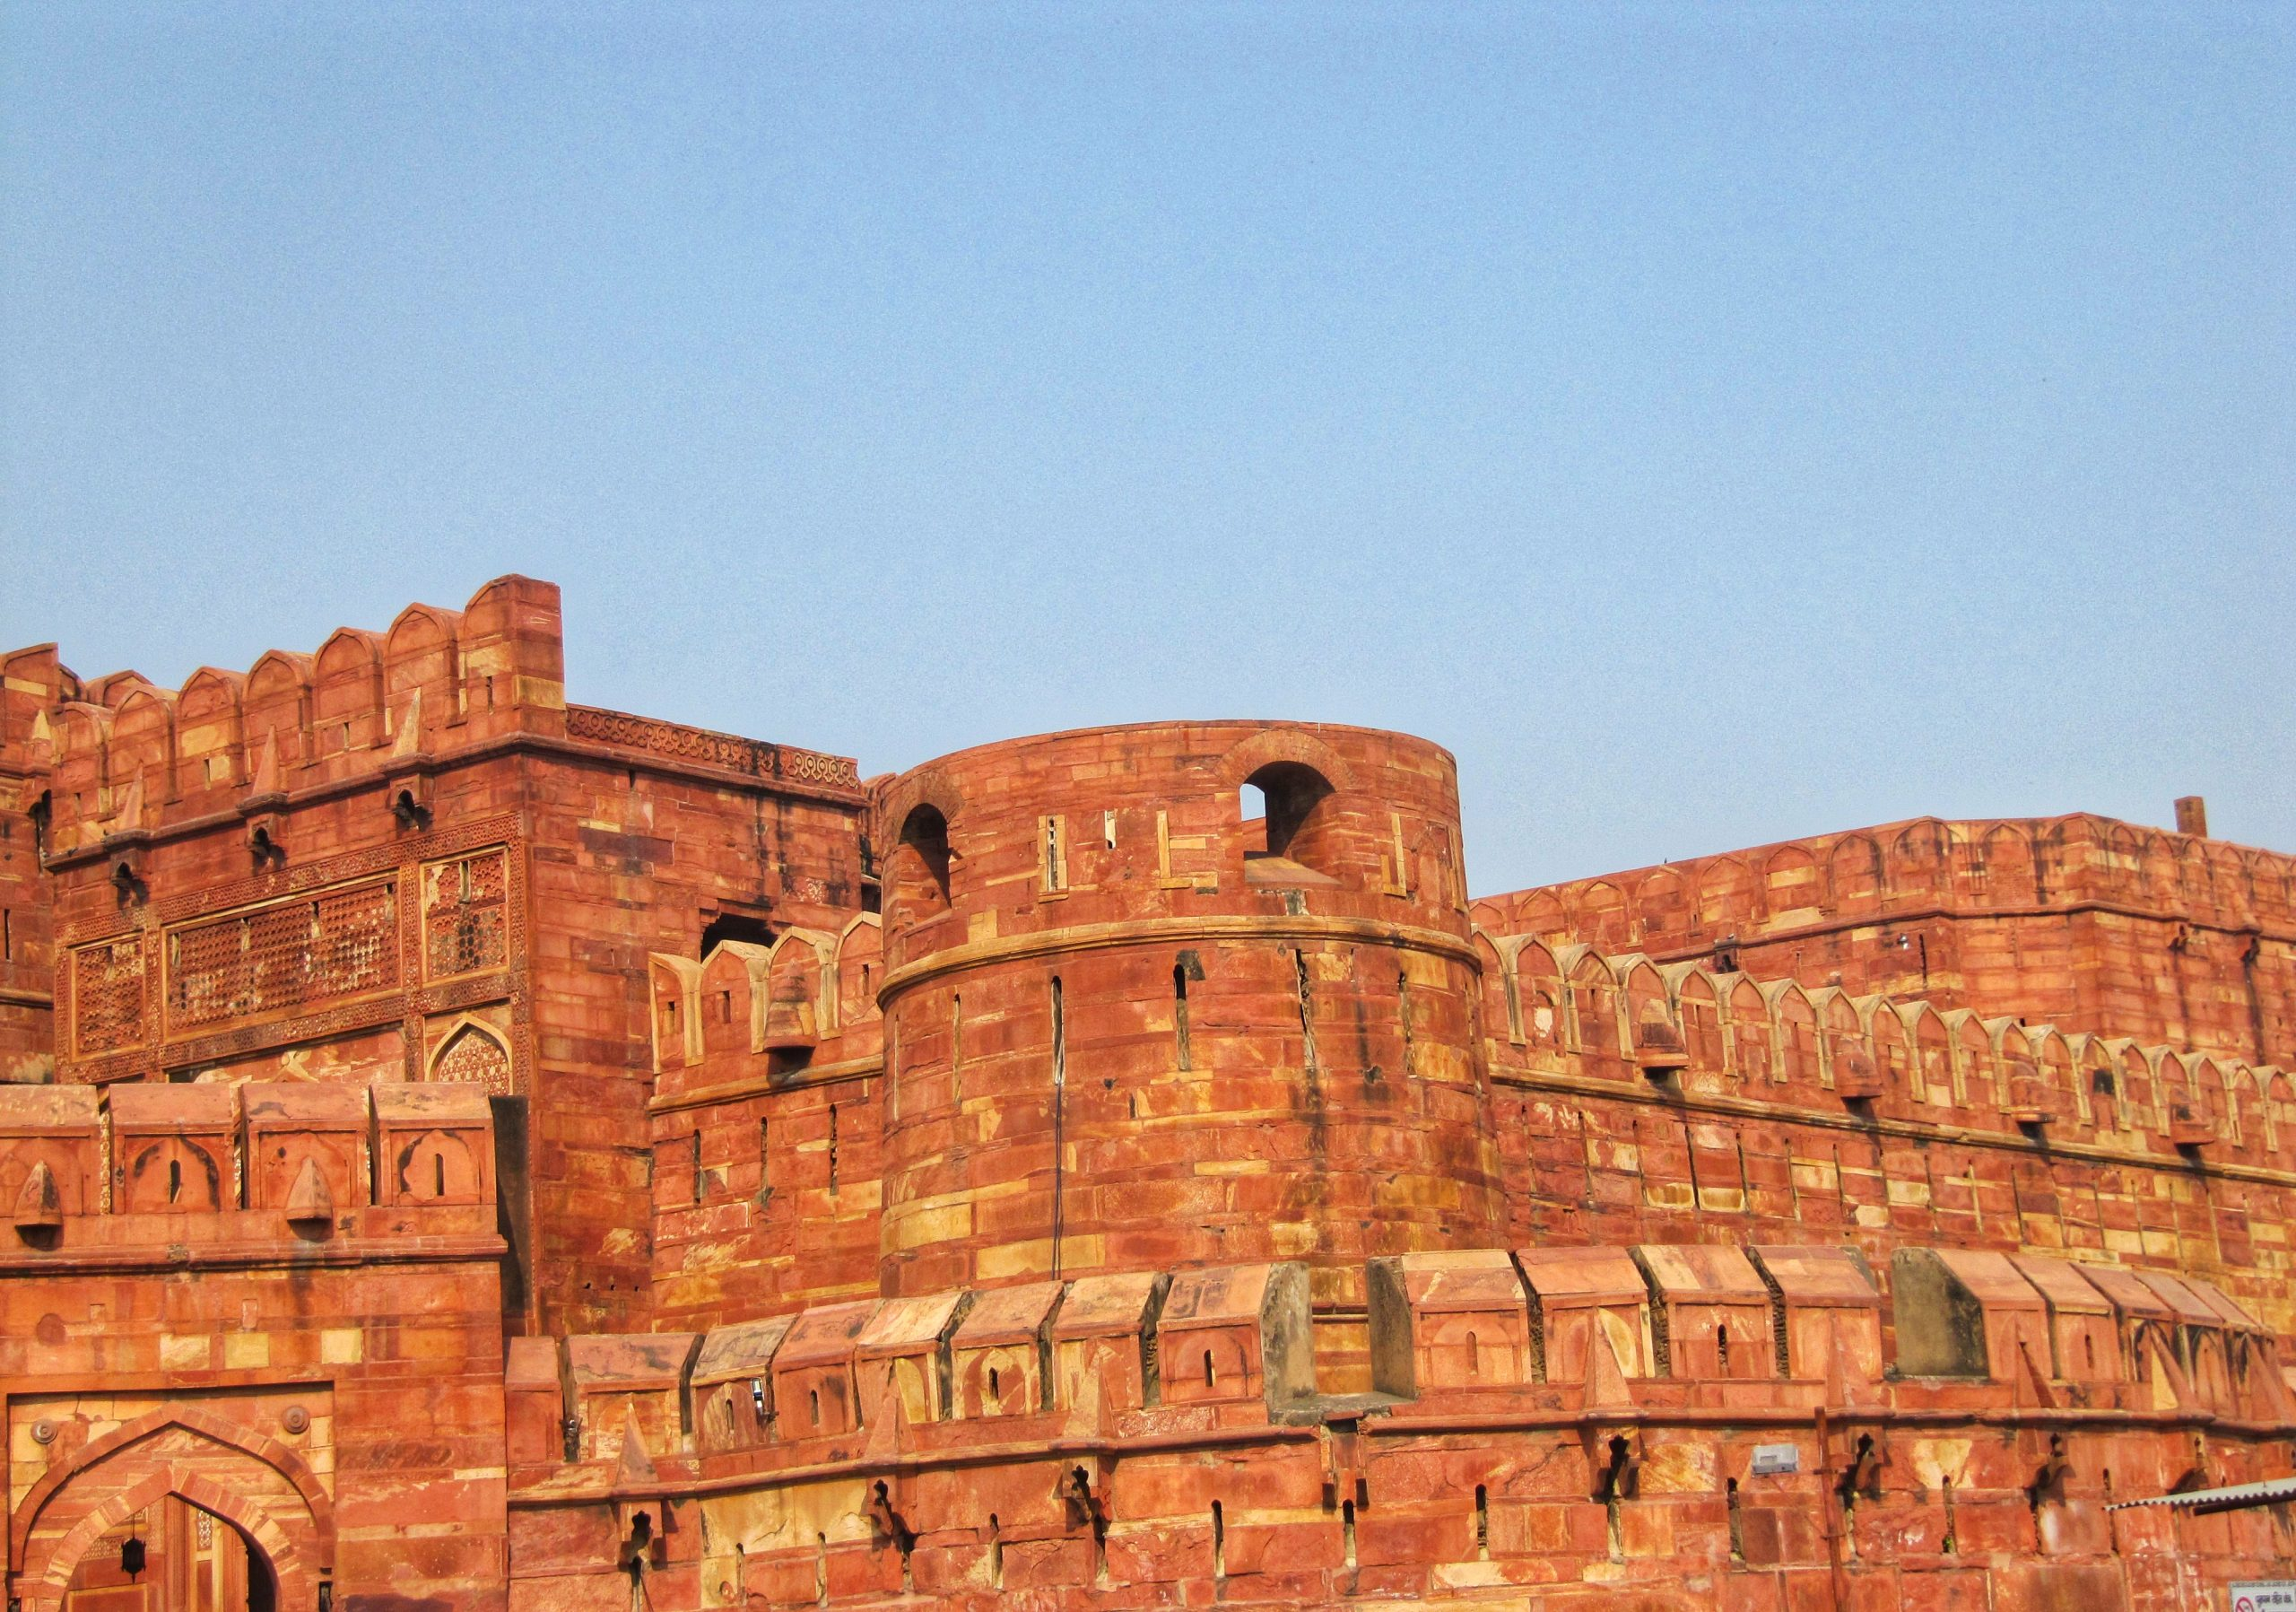 Agra fort of Mughal Dynasty